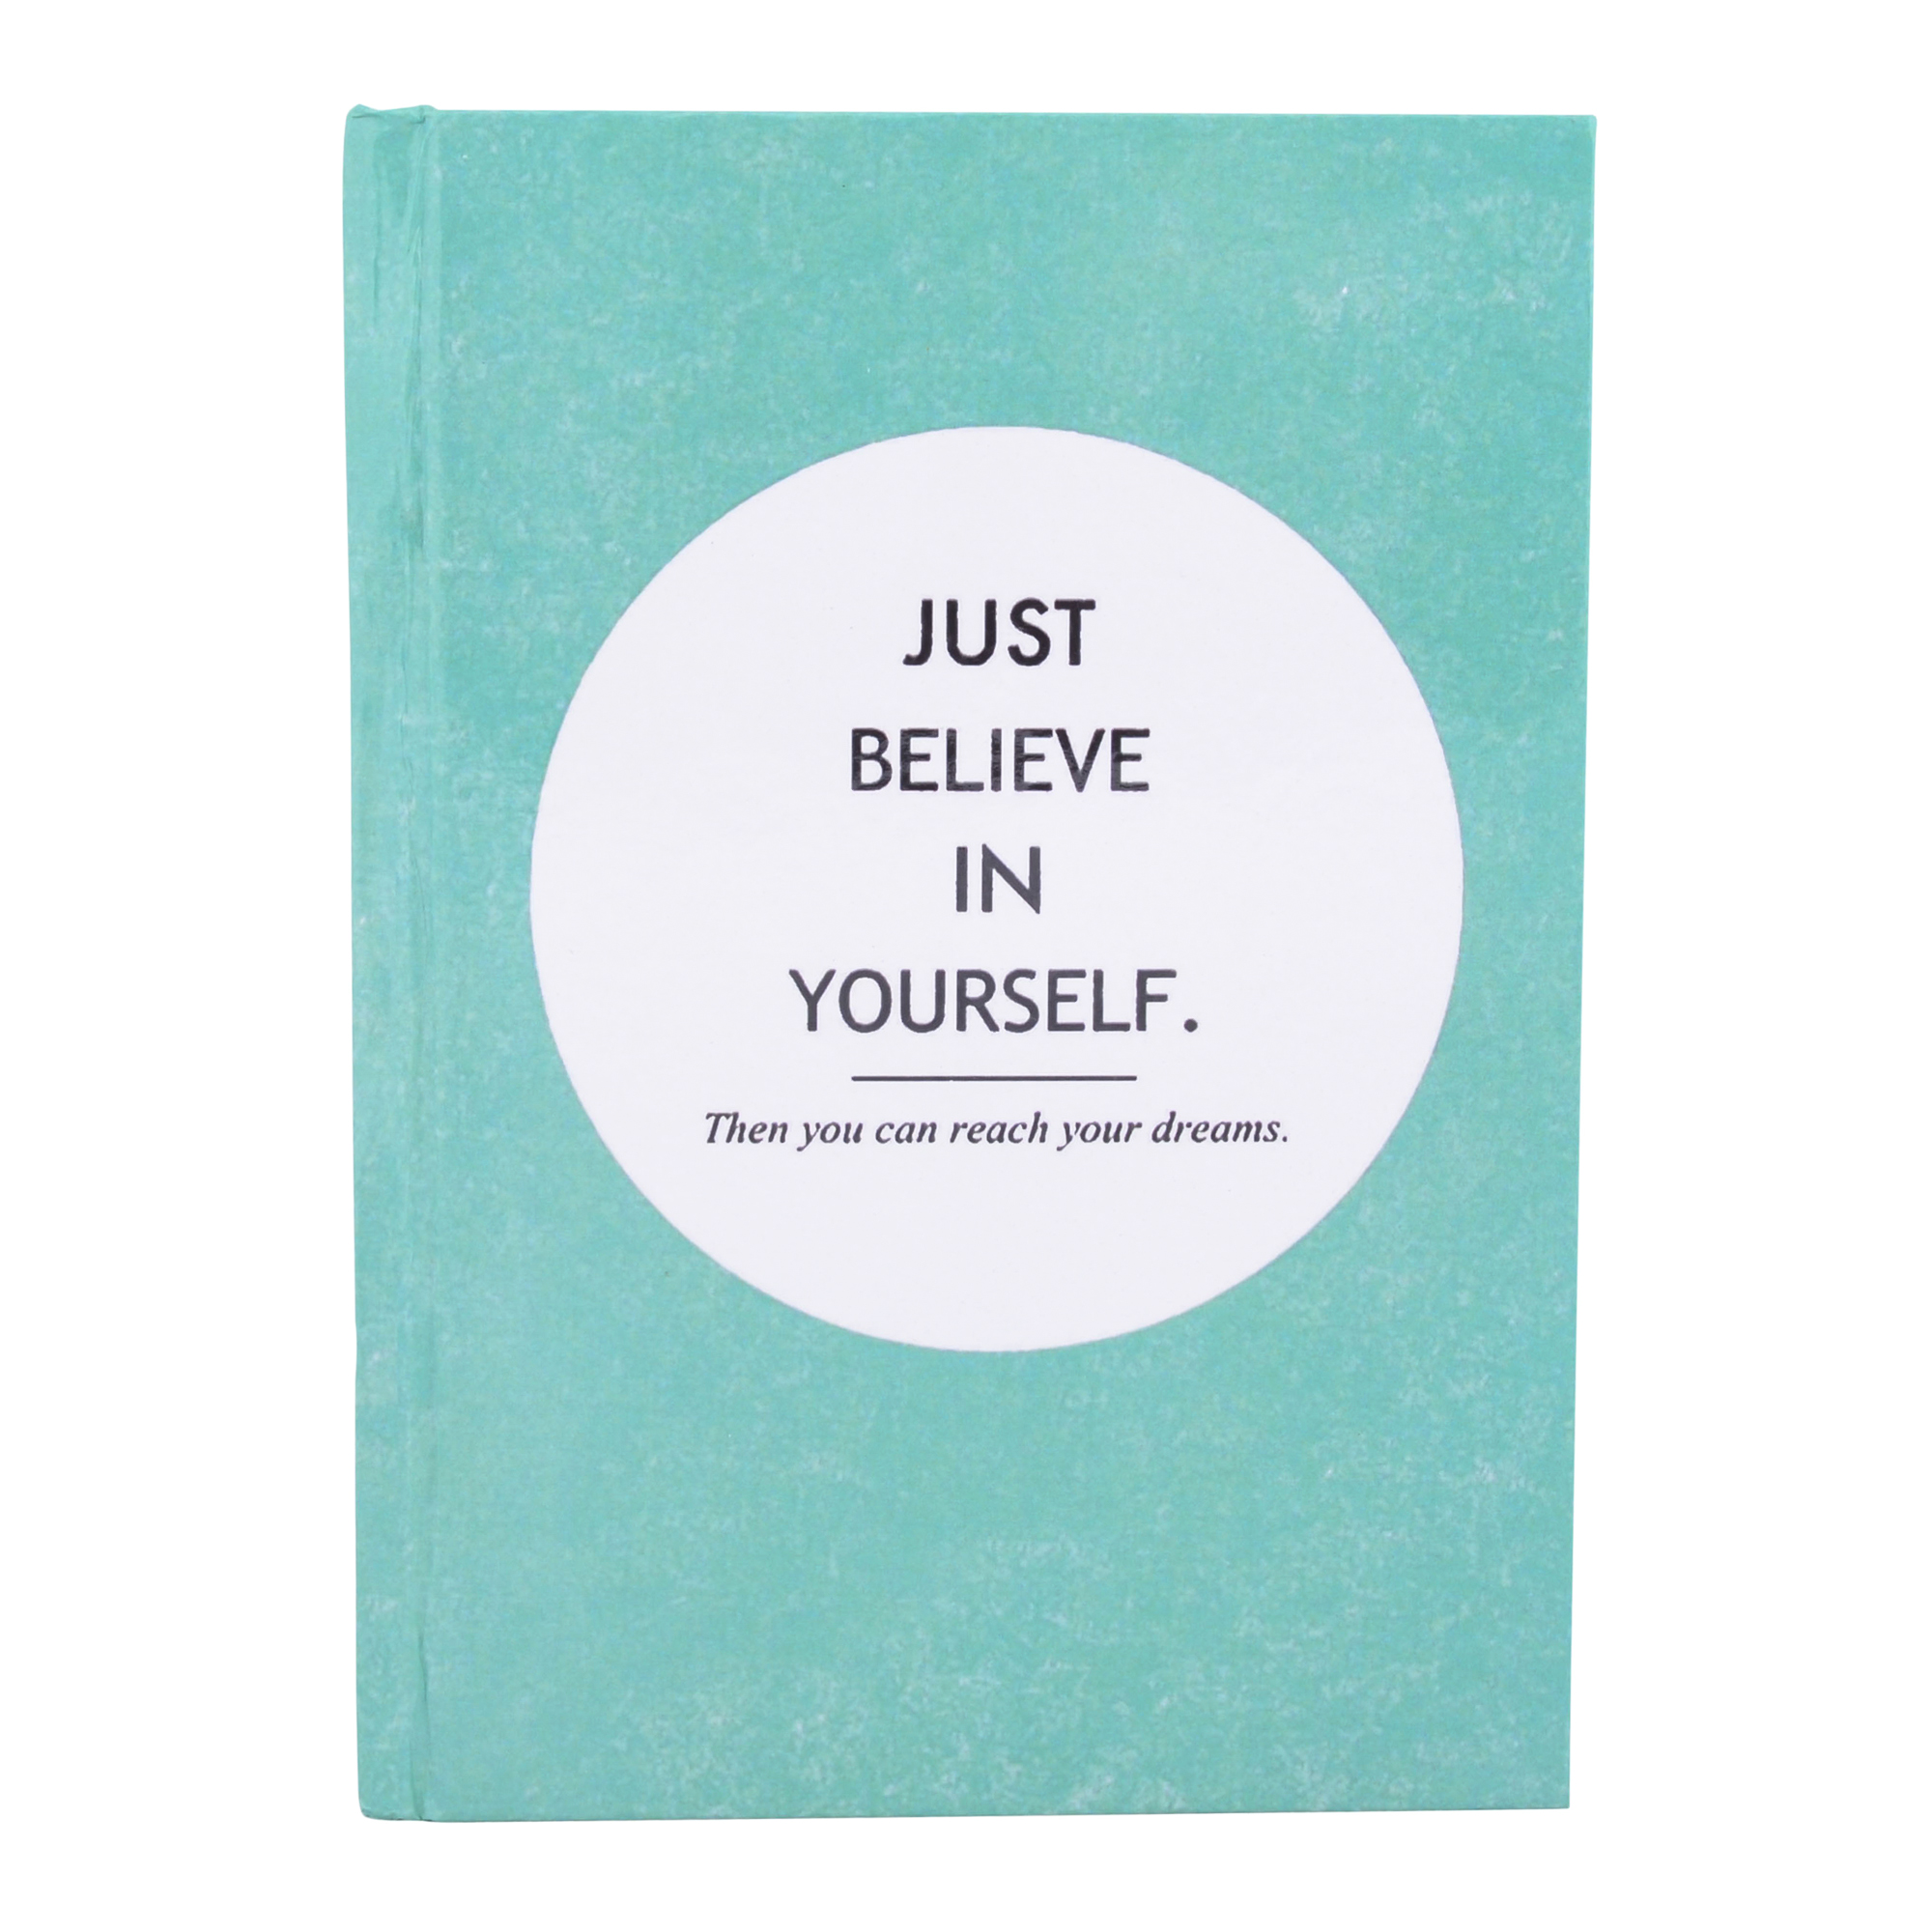 Just Believe in Yourself Handmade Paper Diary